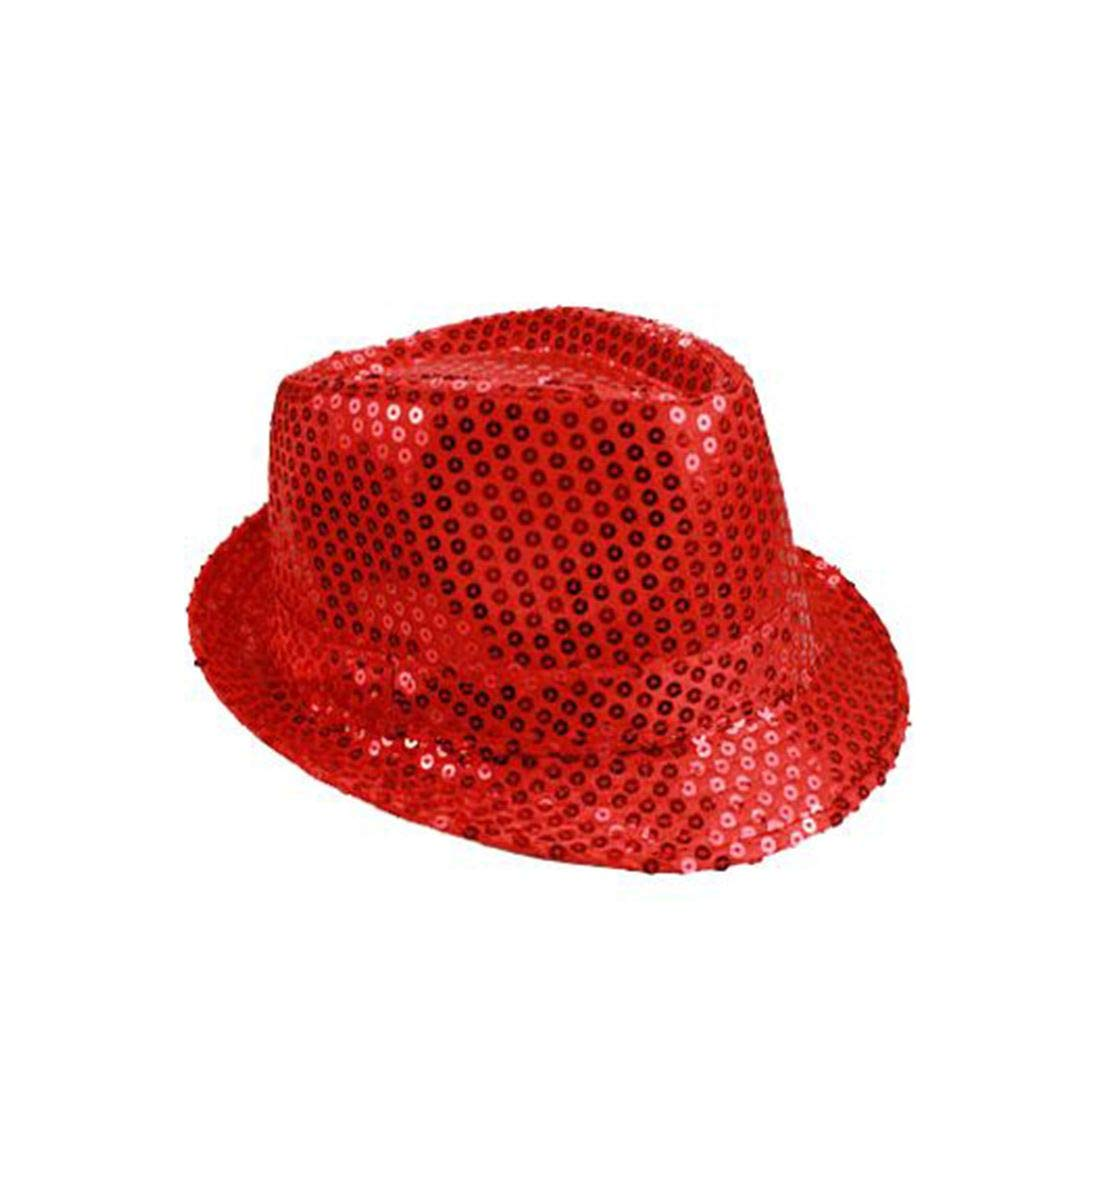 Mozlly Glamorous Red Sequin Fedora Hat Flashing Disco Retro Funky Glitter Sparkly Universal Luxurious Costume Caps Party Favor Games Banquet Wedding Novelty Headwear Accessories 11 Inch